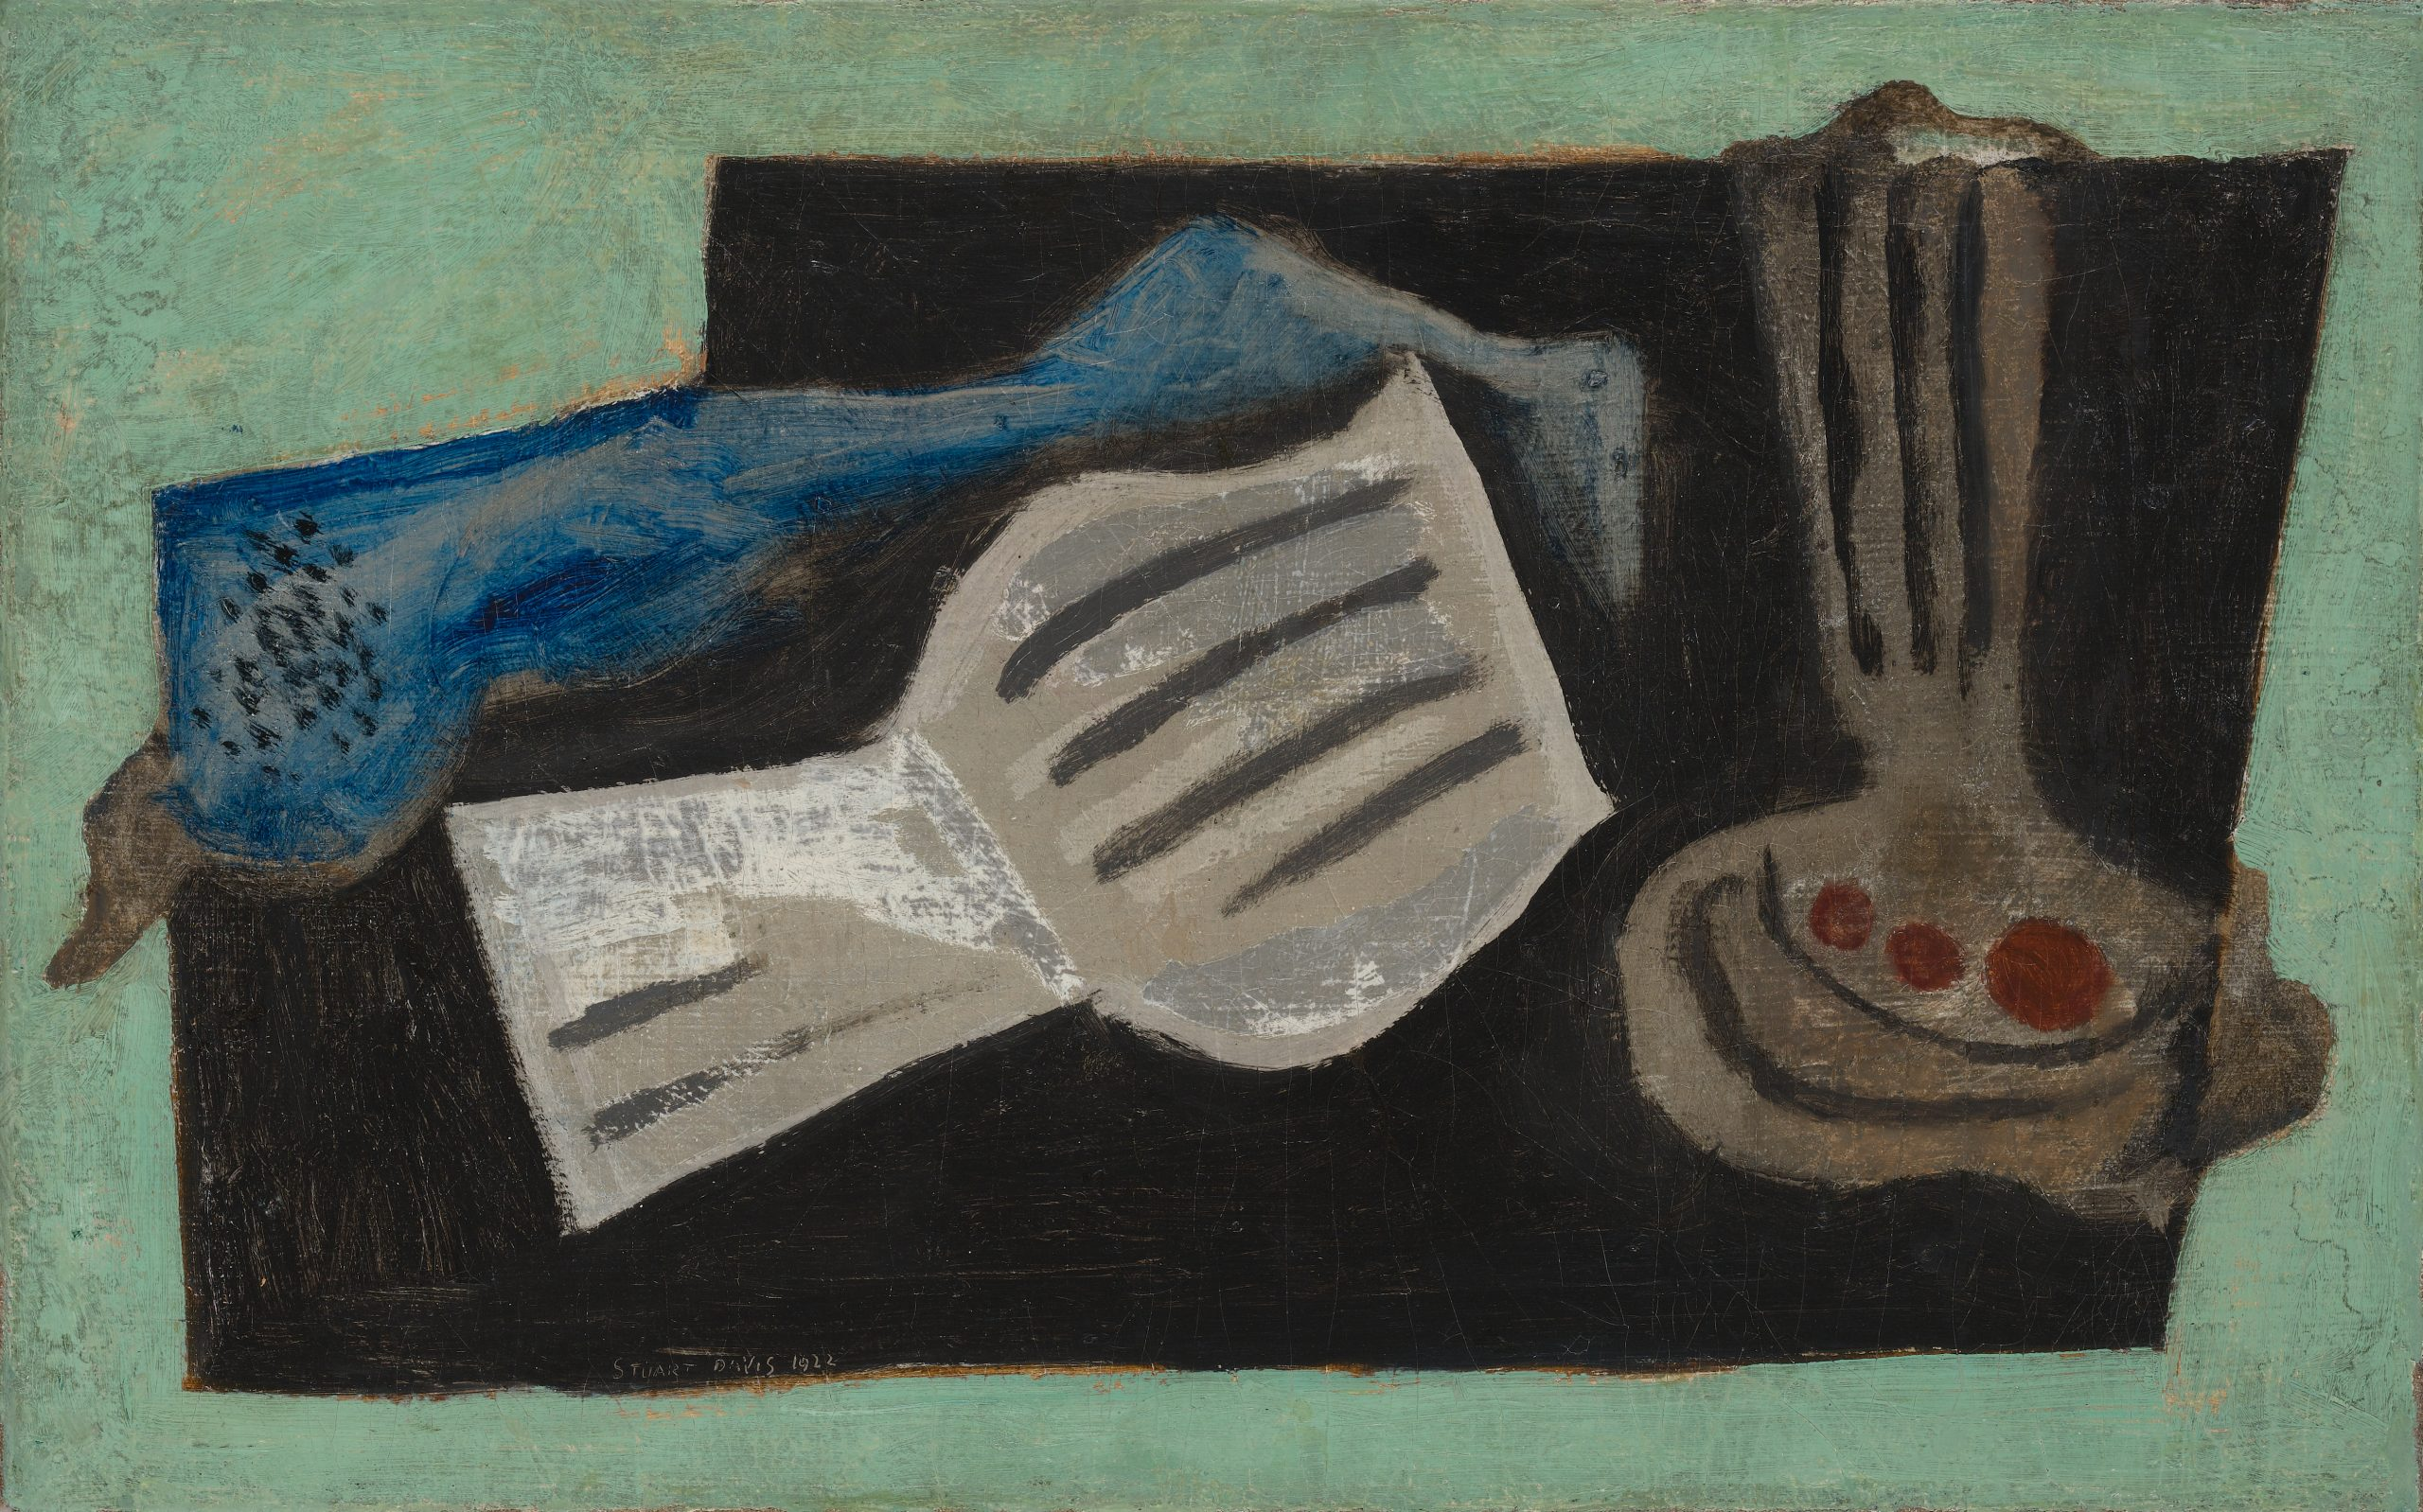 Still life featuring a flattened vase, open book, and blue fabric on a black and green background.